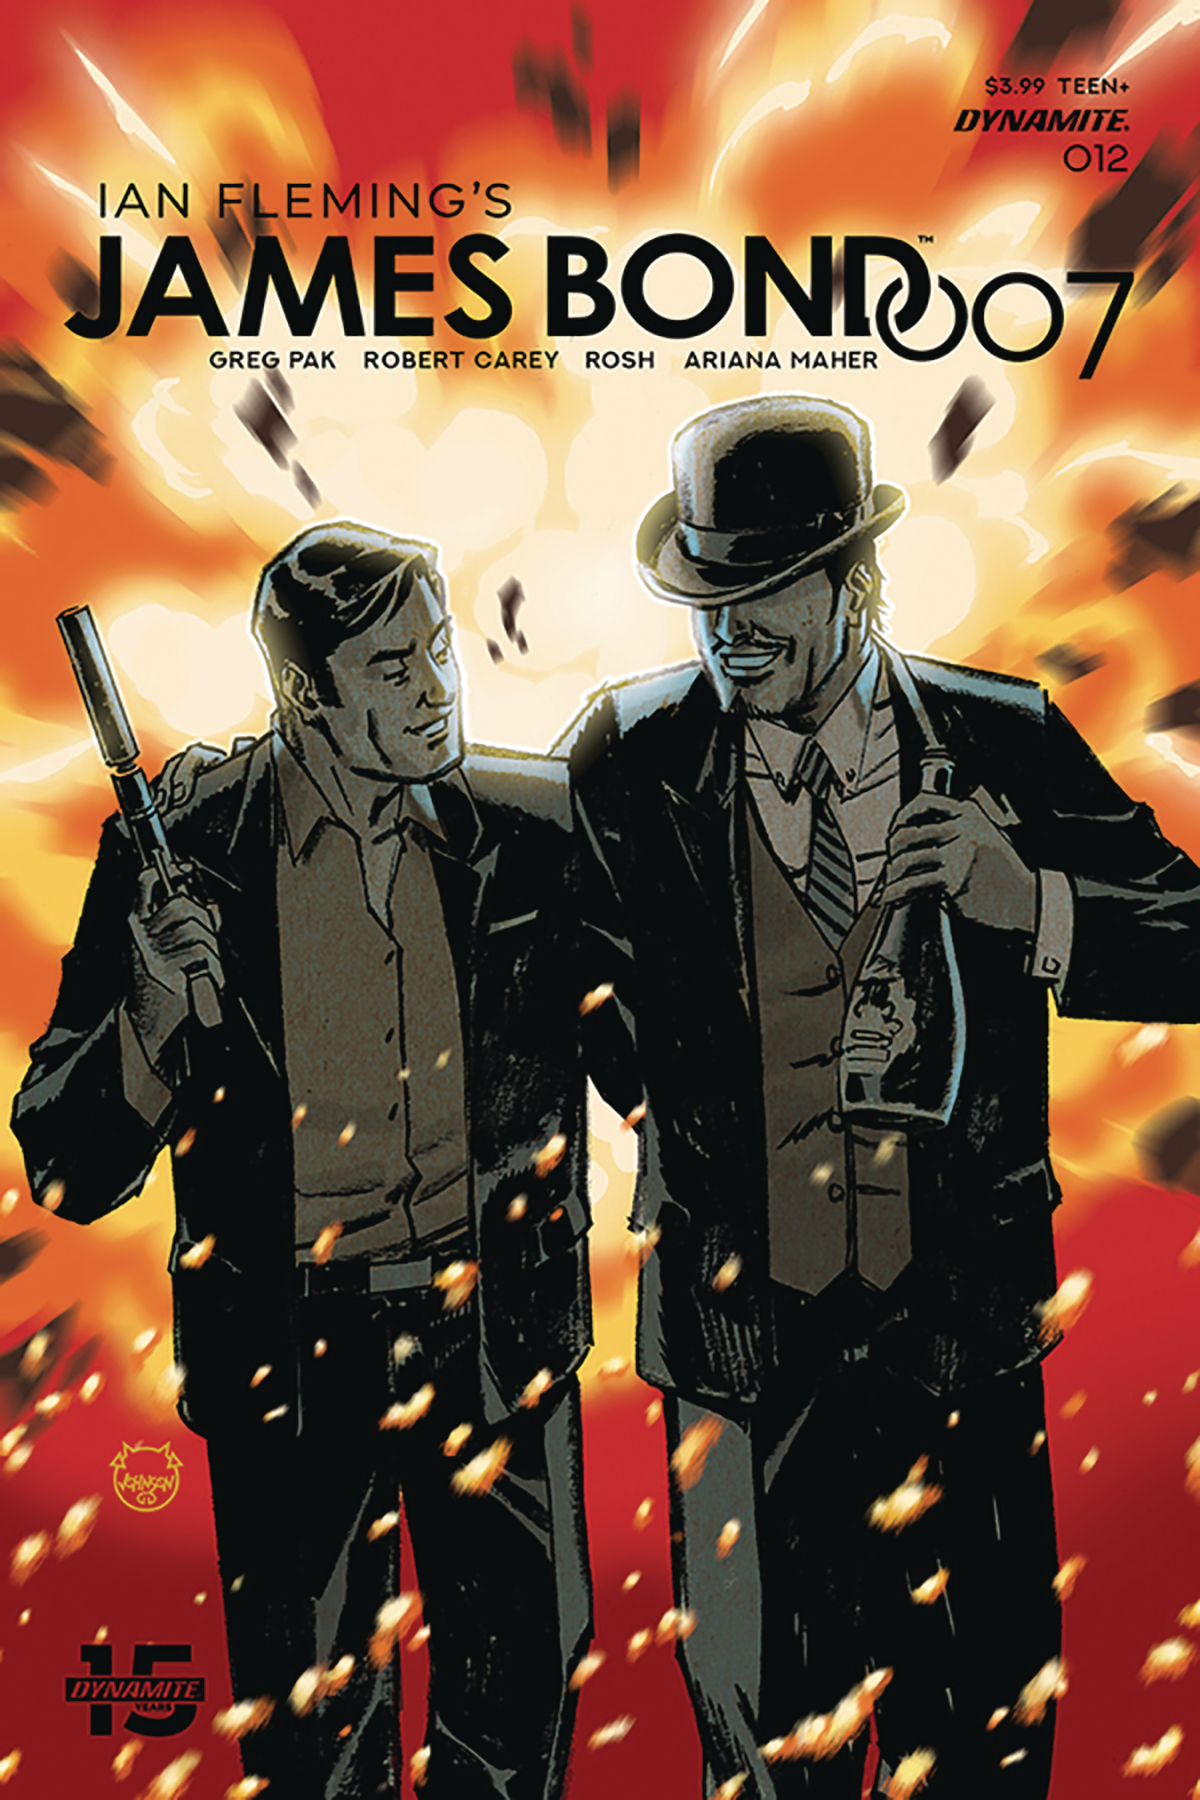 JAMES BOND 007 #12 CVR A JOHNSON